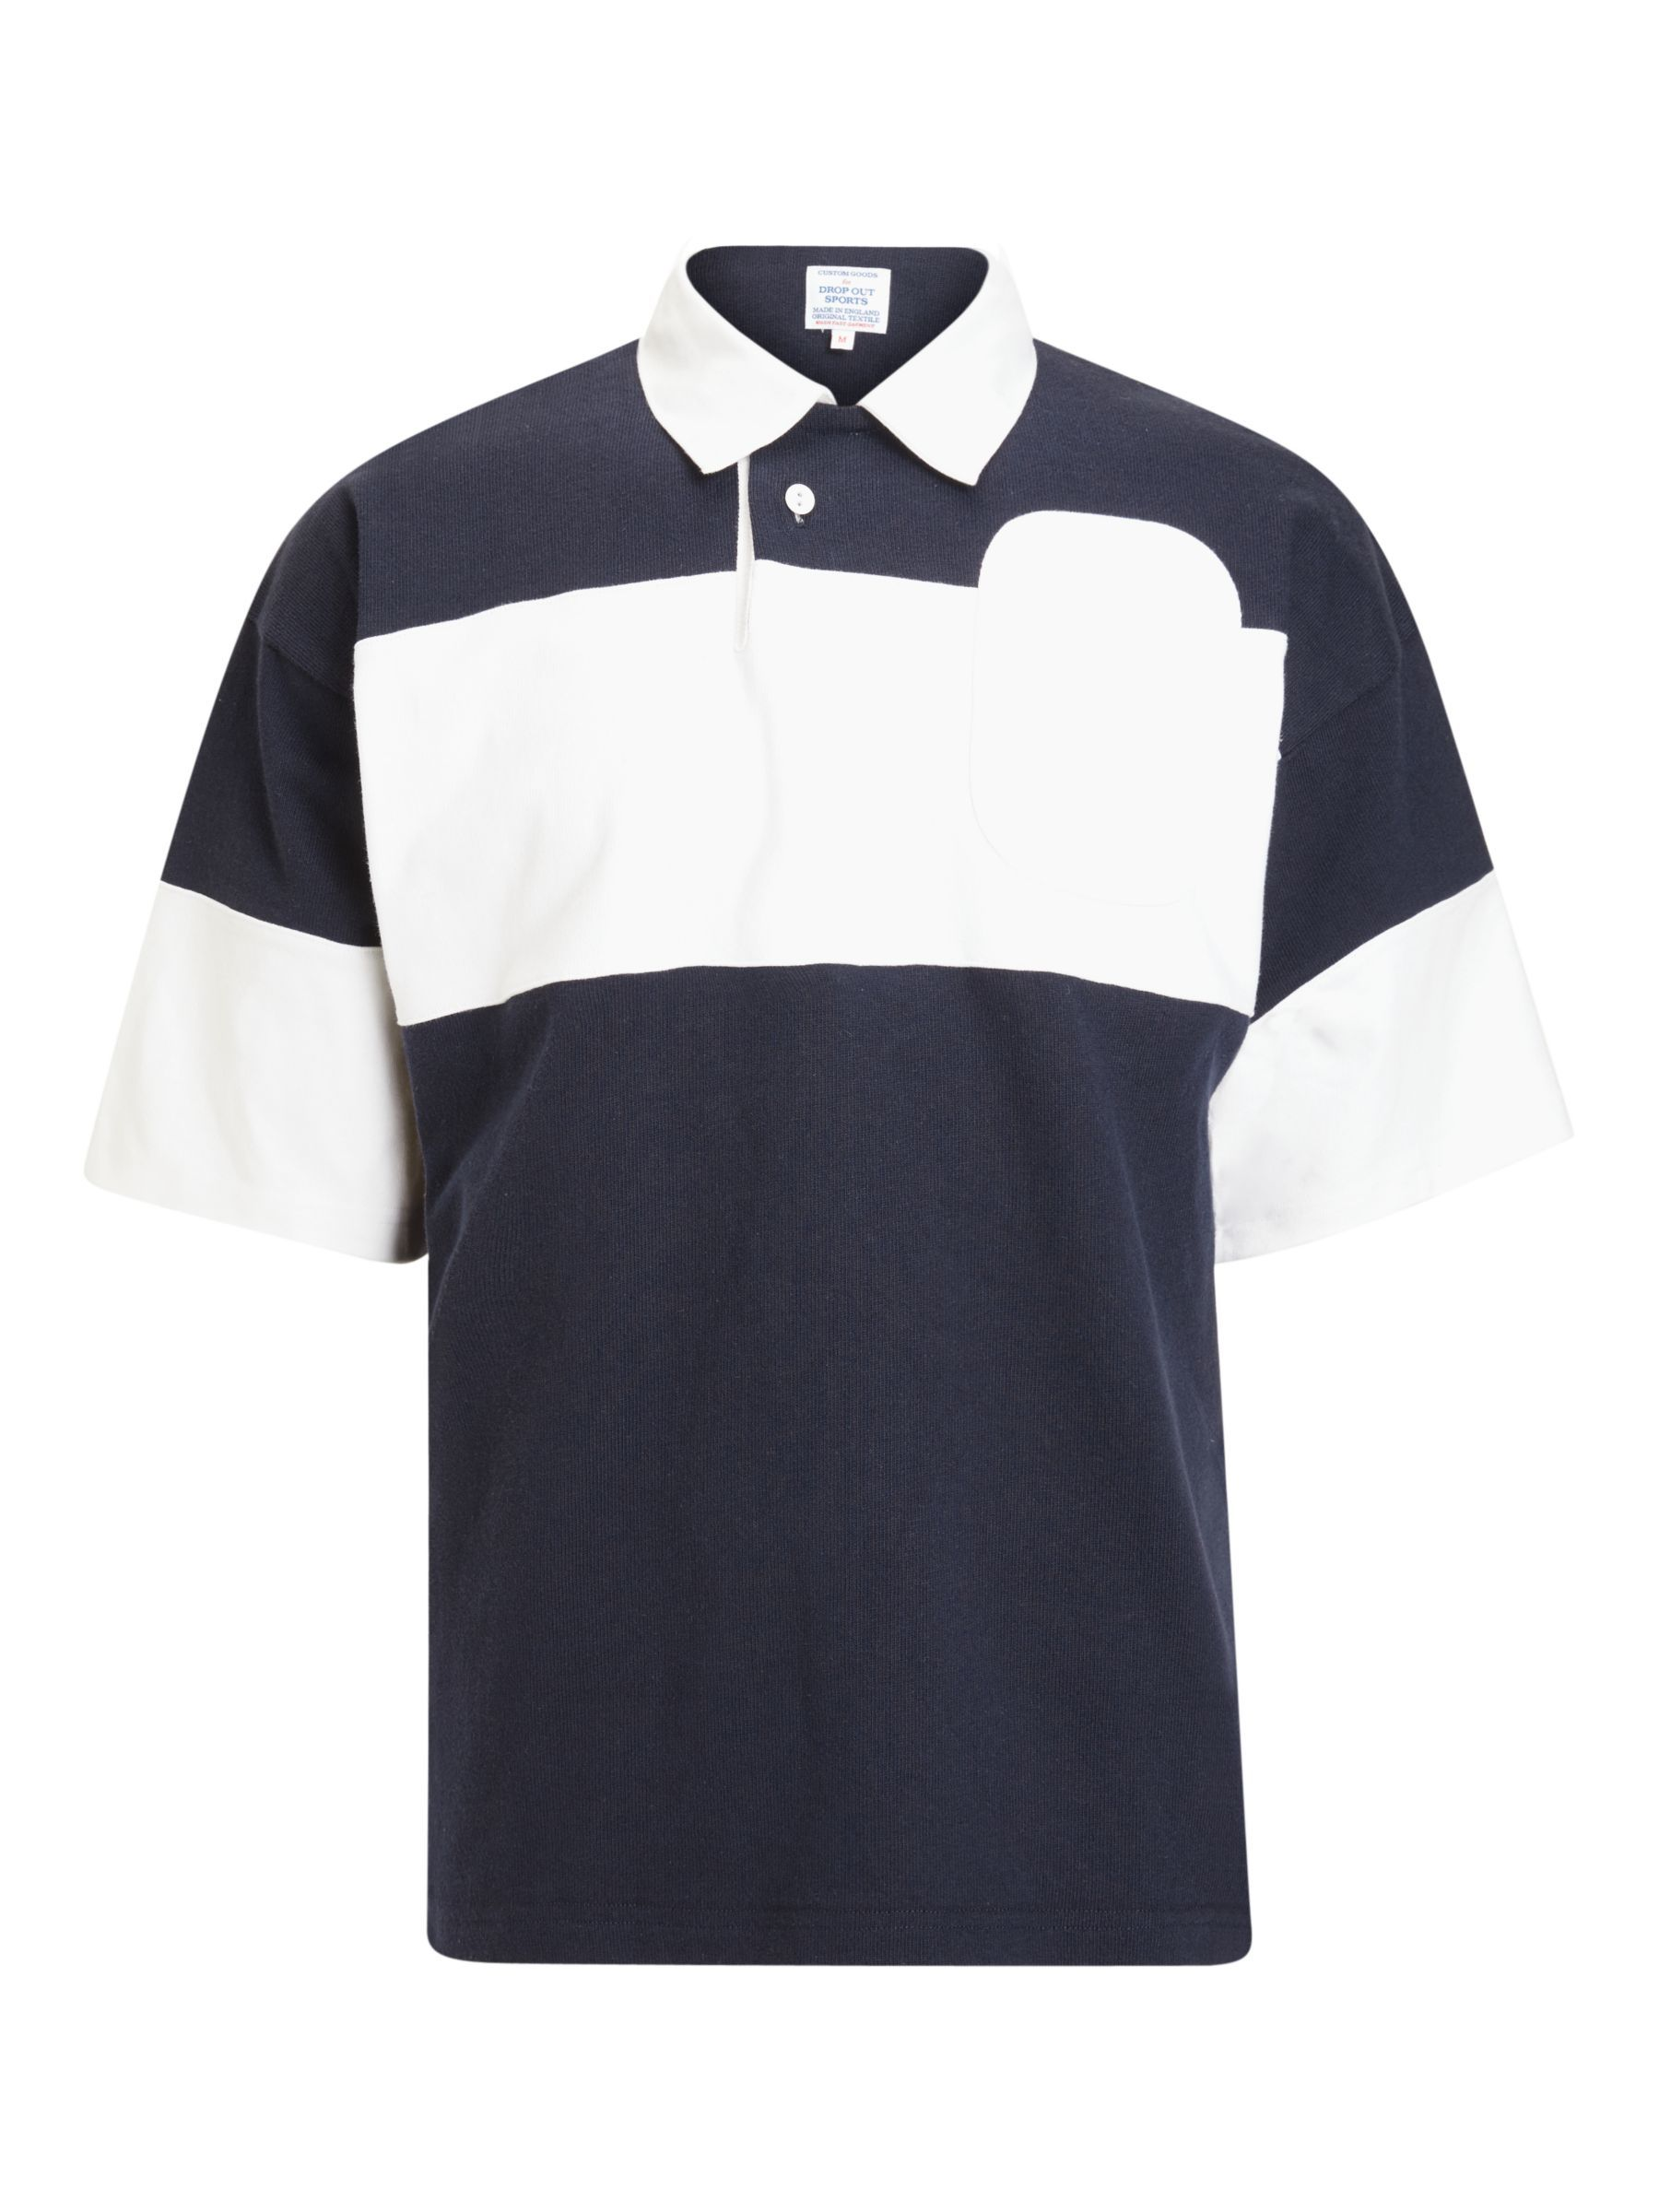 Garbstore Drop Out Sports Gots Organic Cotton Rugby Polo Shirt In 2020 Vintage Rugby Shirts Mens Tops Polo Shirt